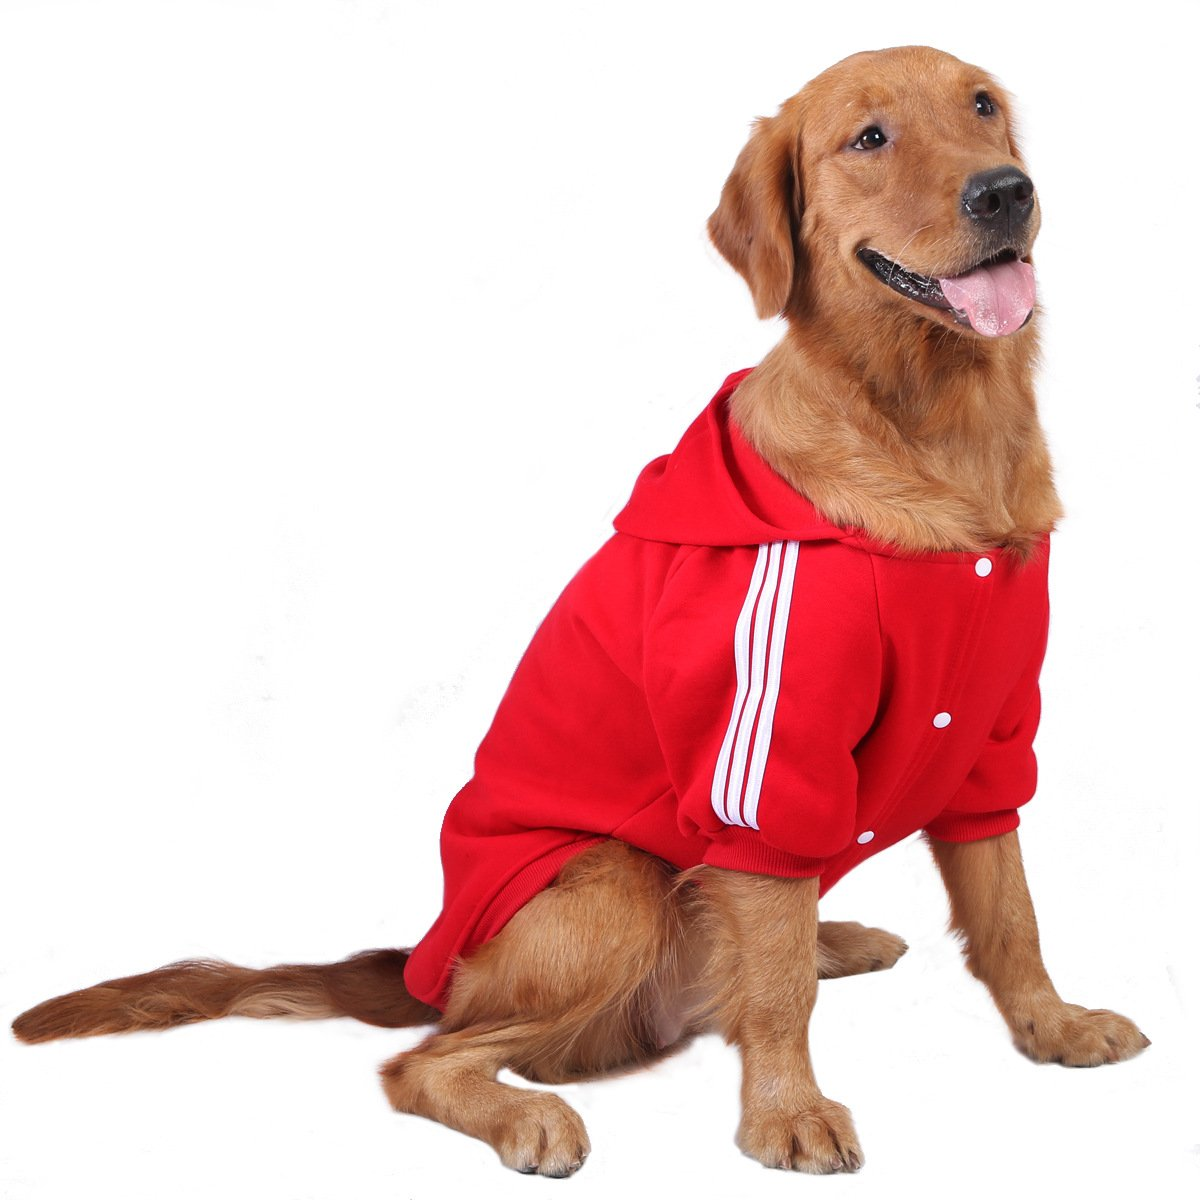 Red 4XL Red 4XL Dog Coat for Large Dogs,Pet Sweater Warm Hooded Sports Clothe,Red,4XL